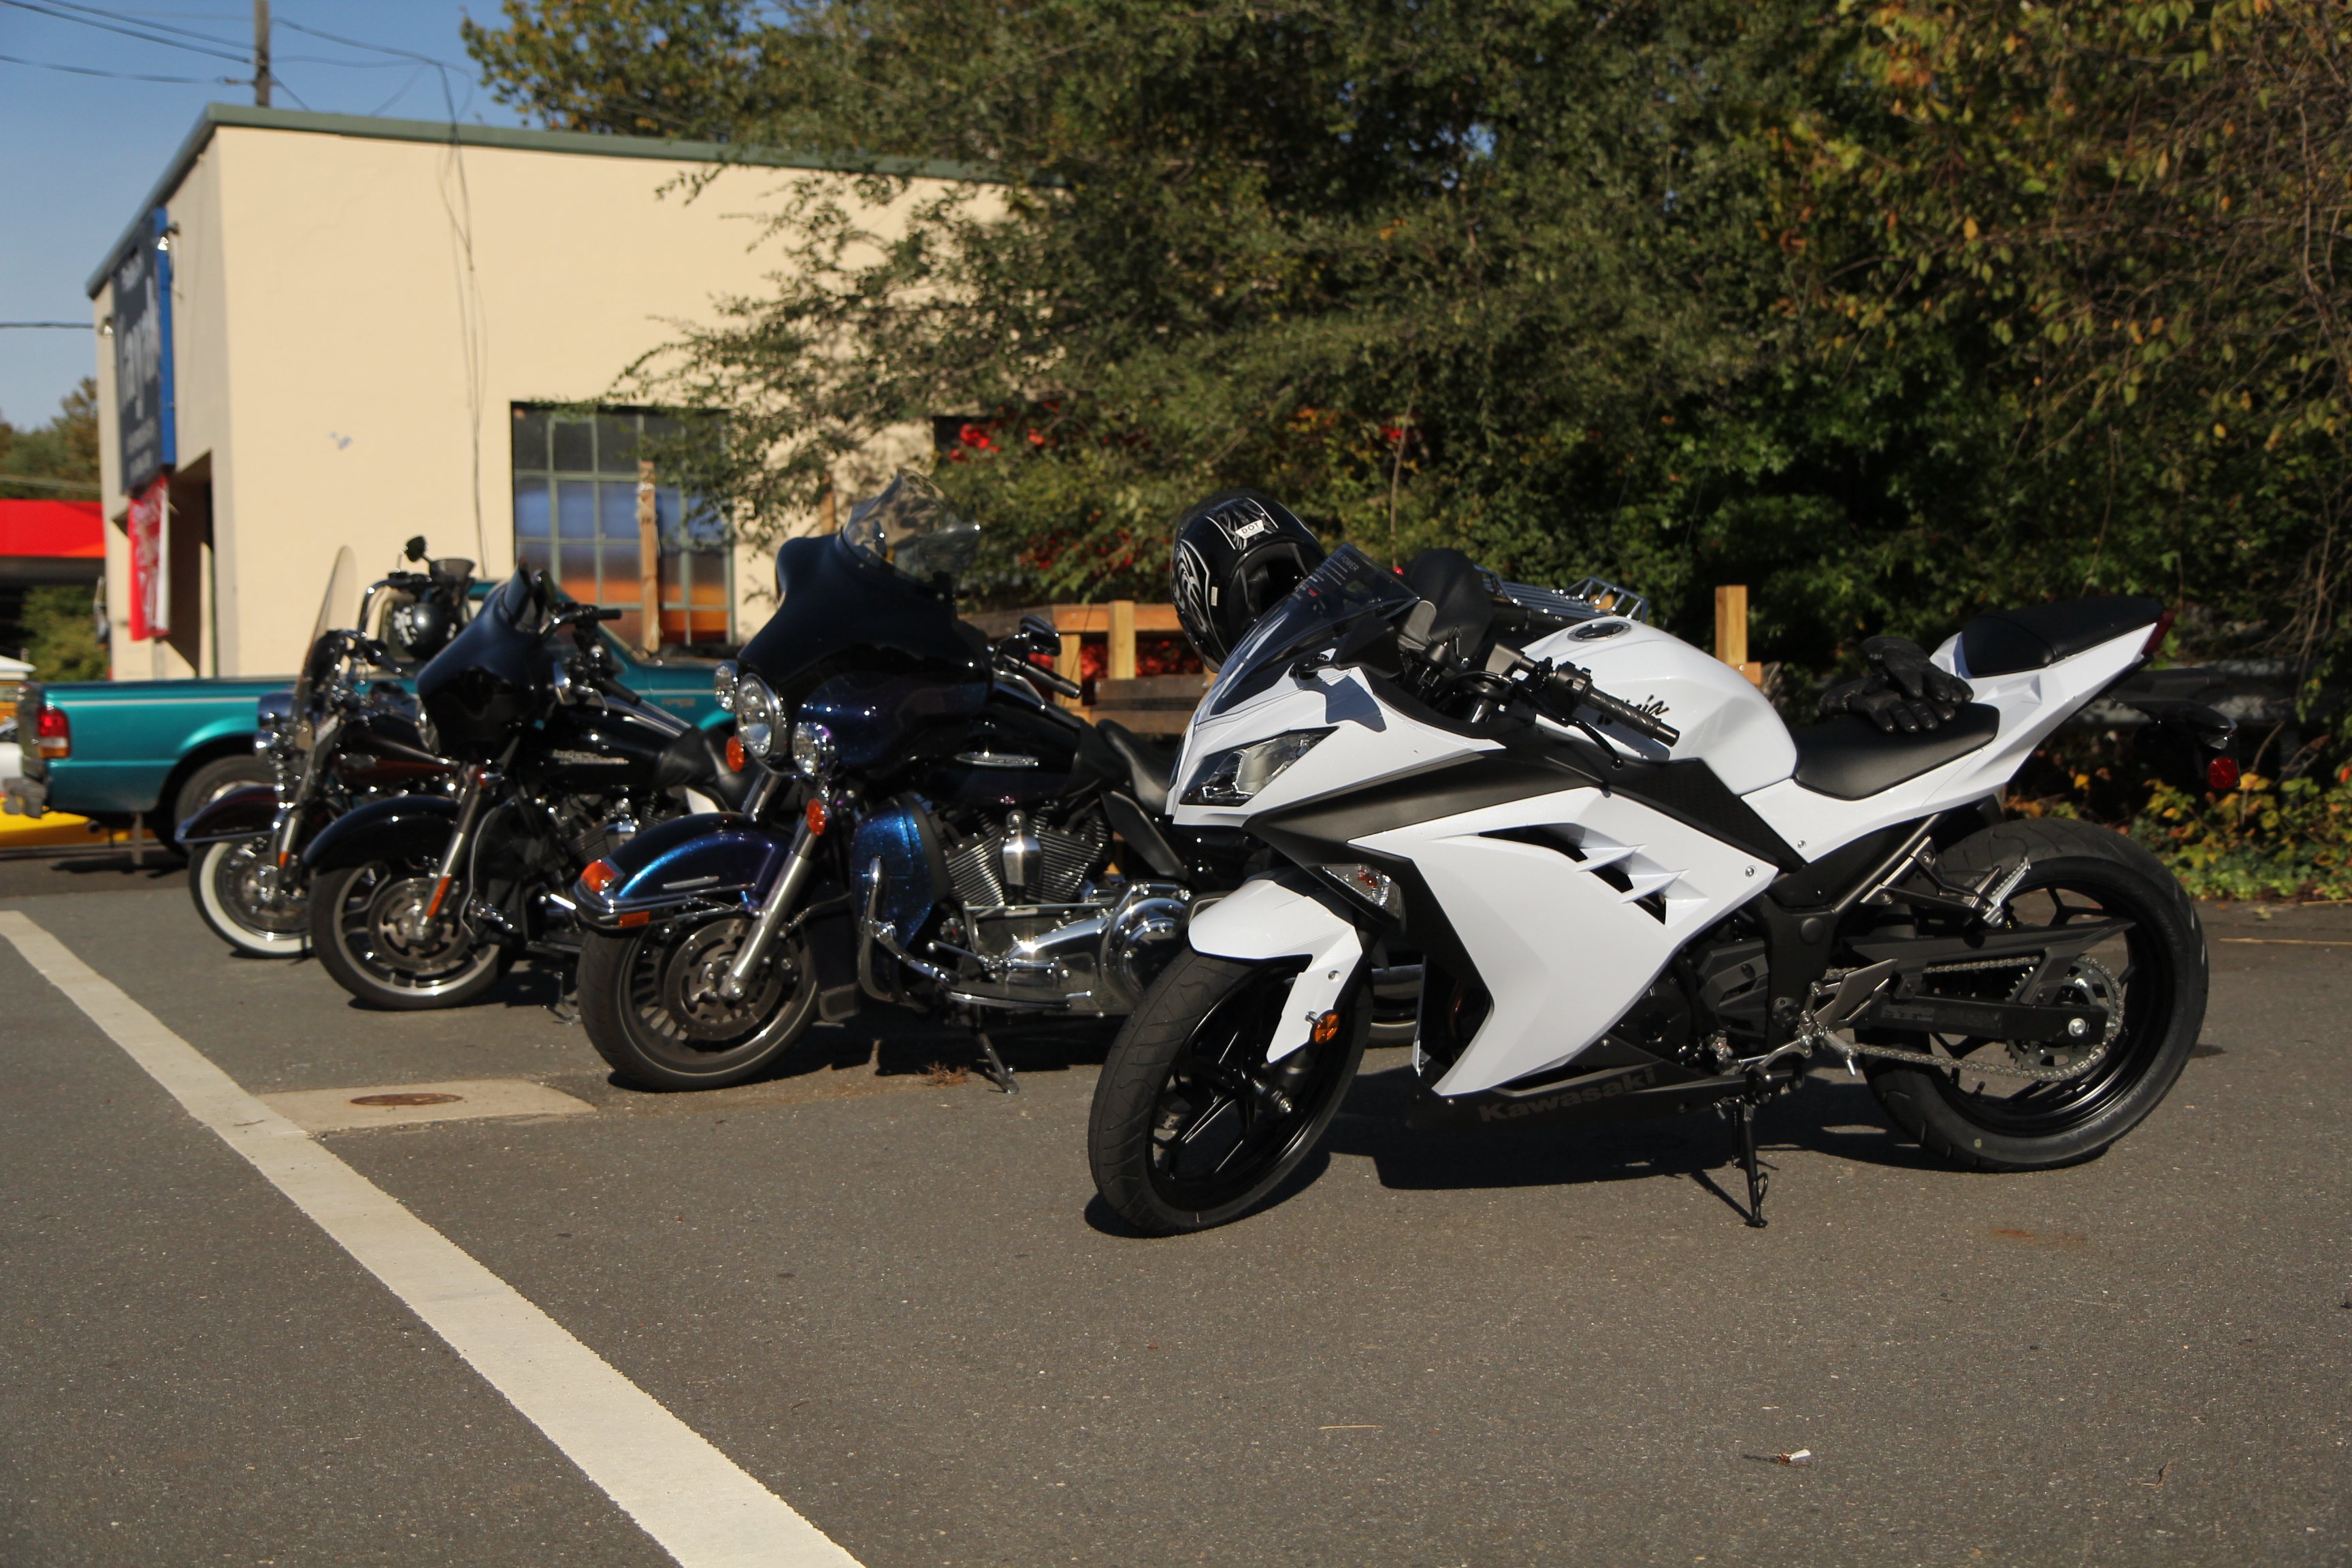 Ride and review of the 2013 Kawasaki Ninja 300 (non-ABS ...